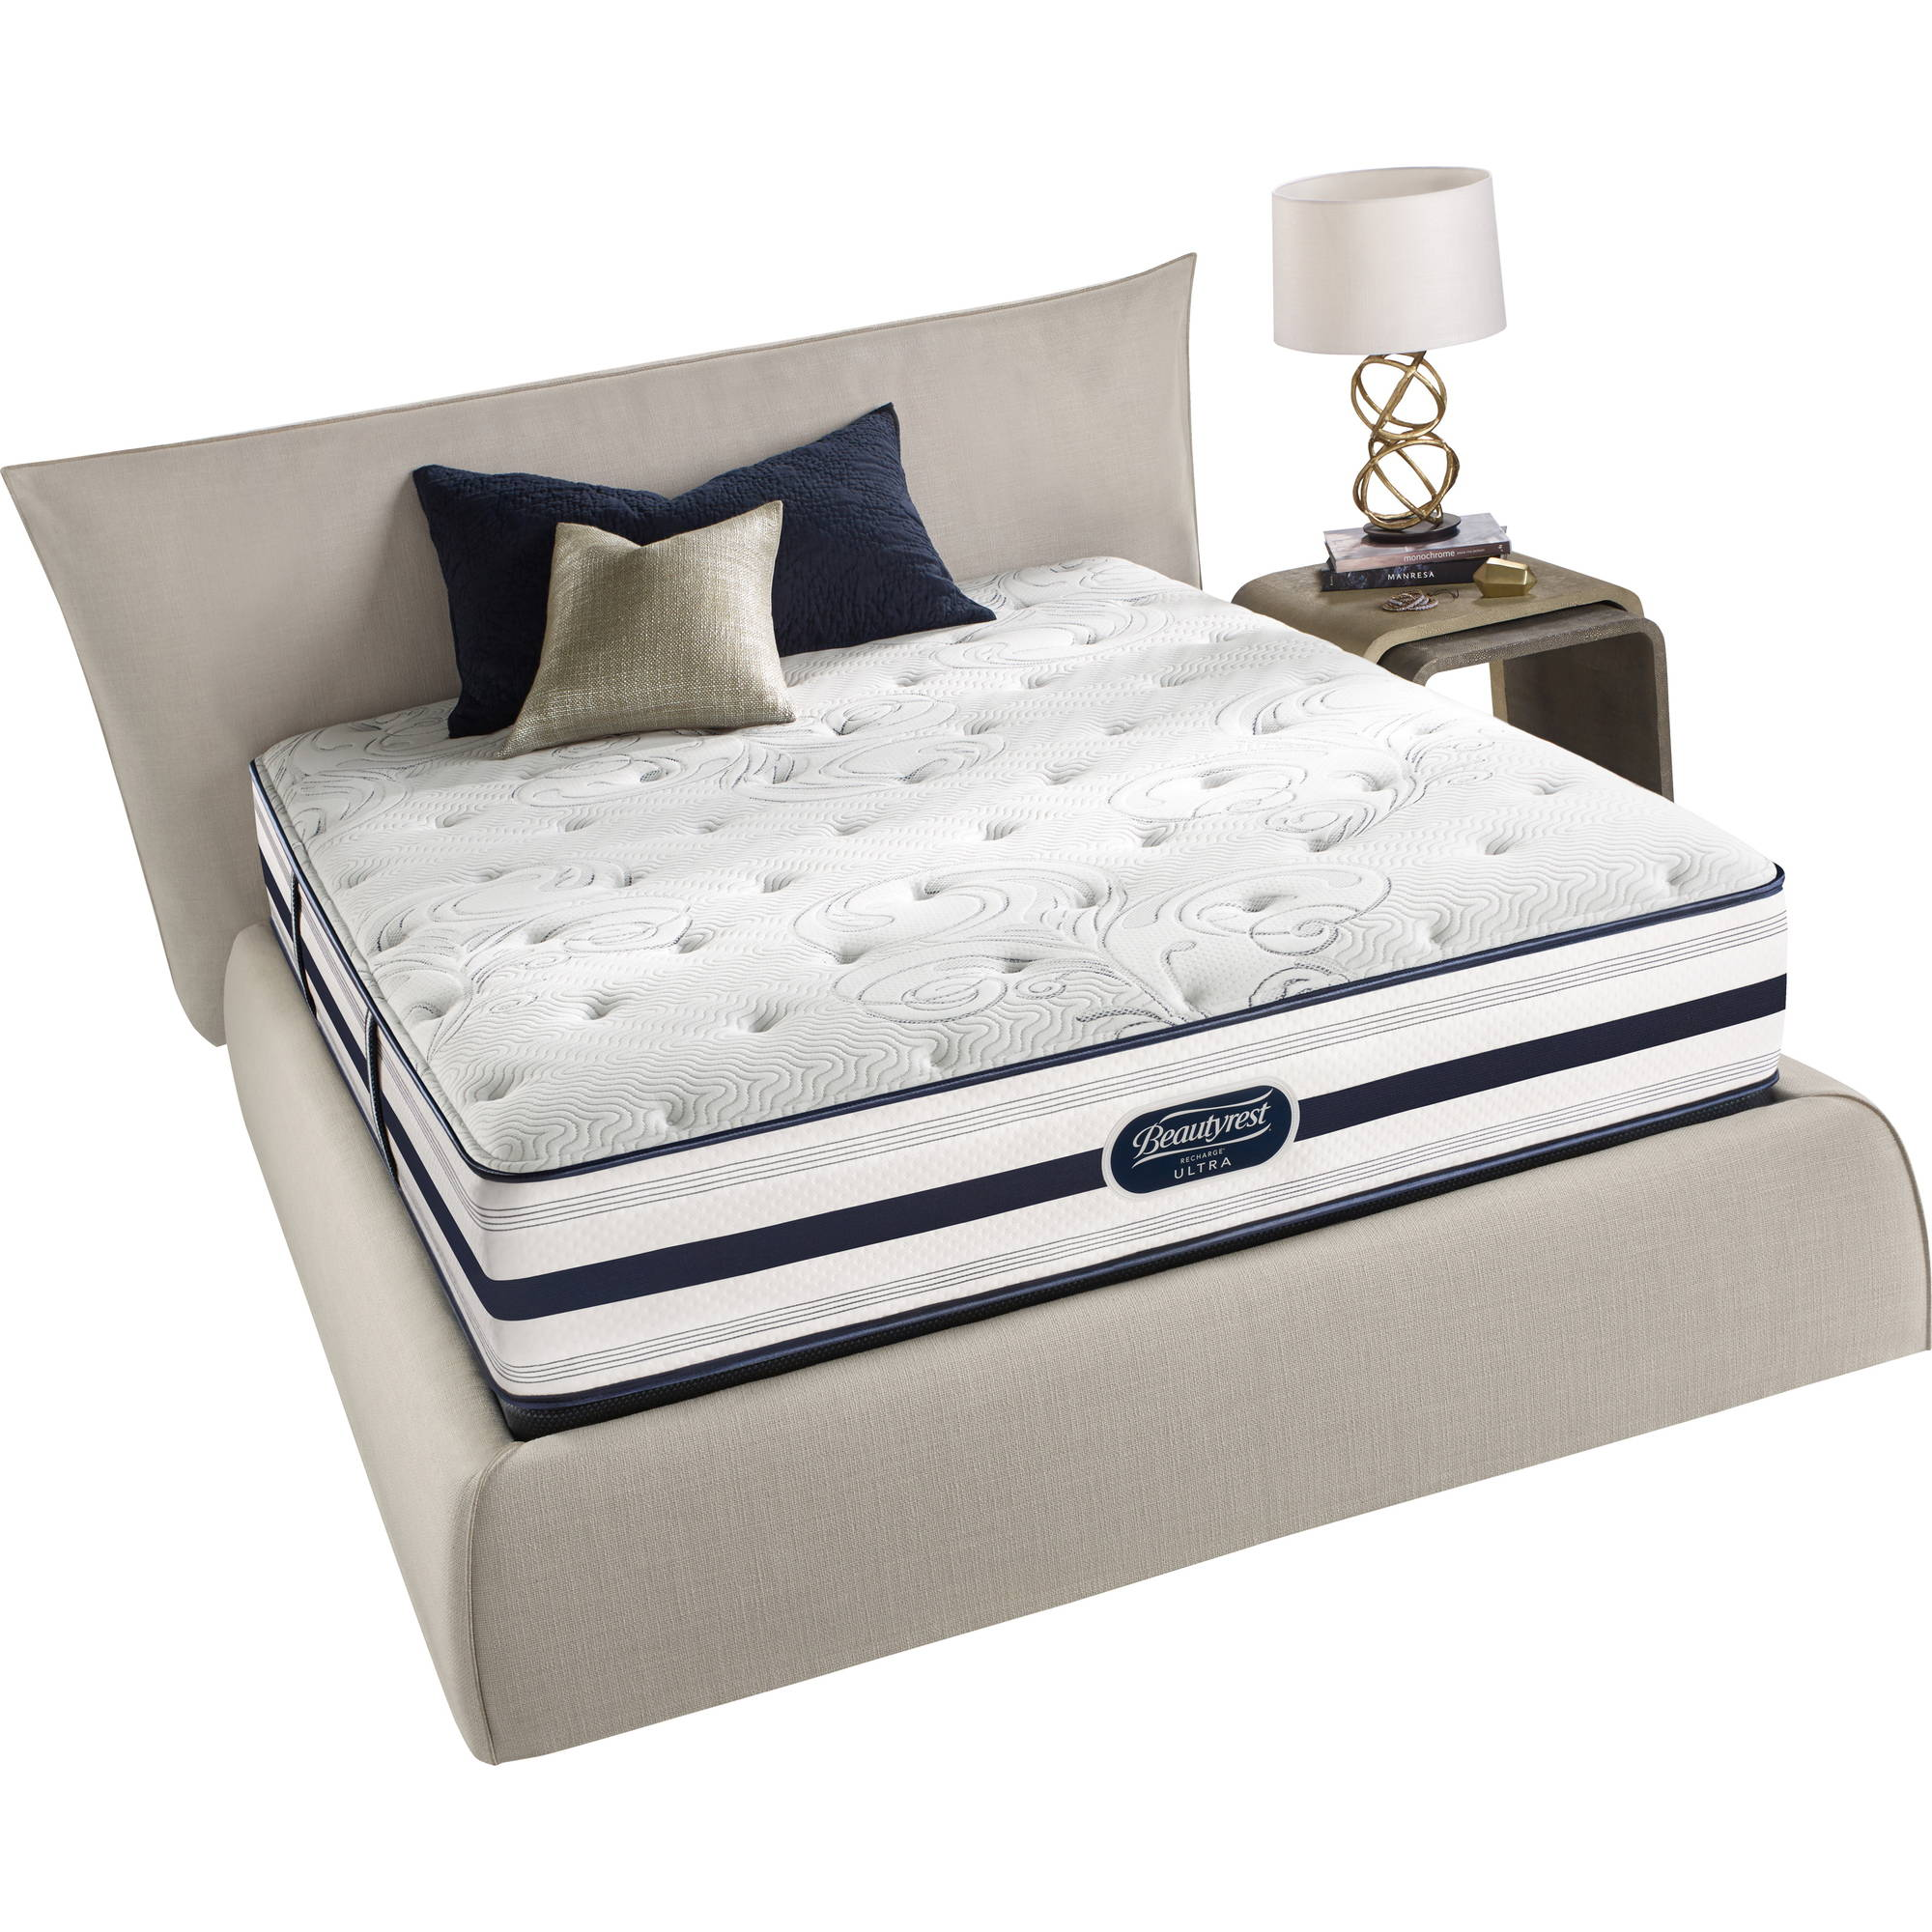 "Beautyrest Recharge Enchanting Stars 13.5"" Plush Mattress, Multiple Sizes"